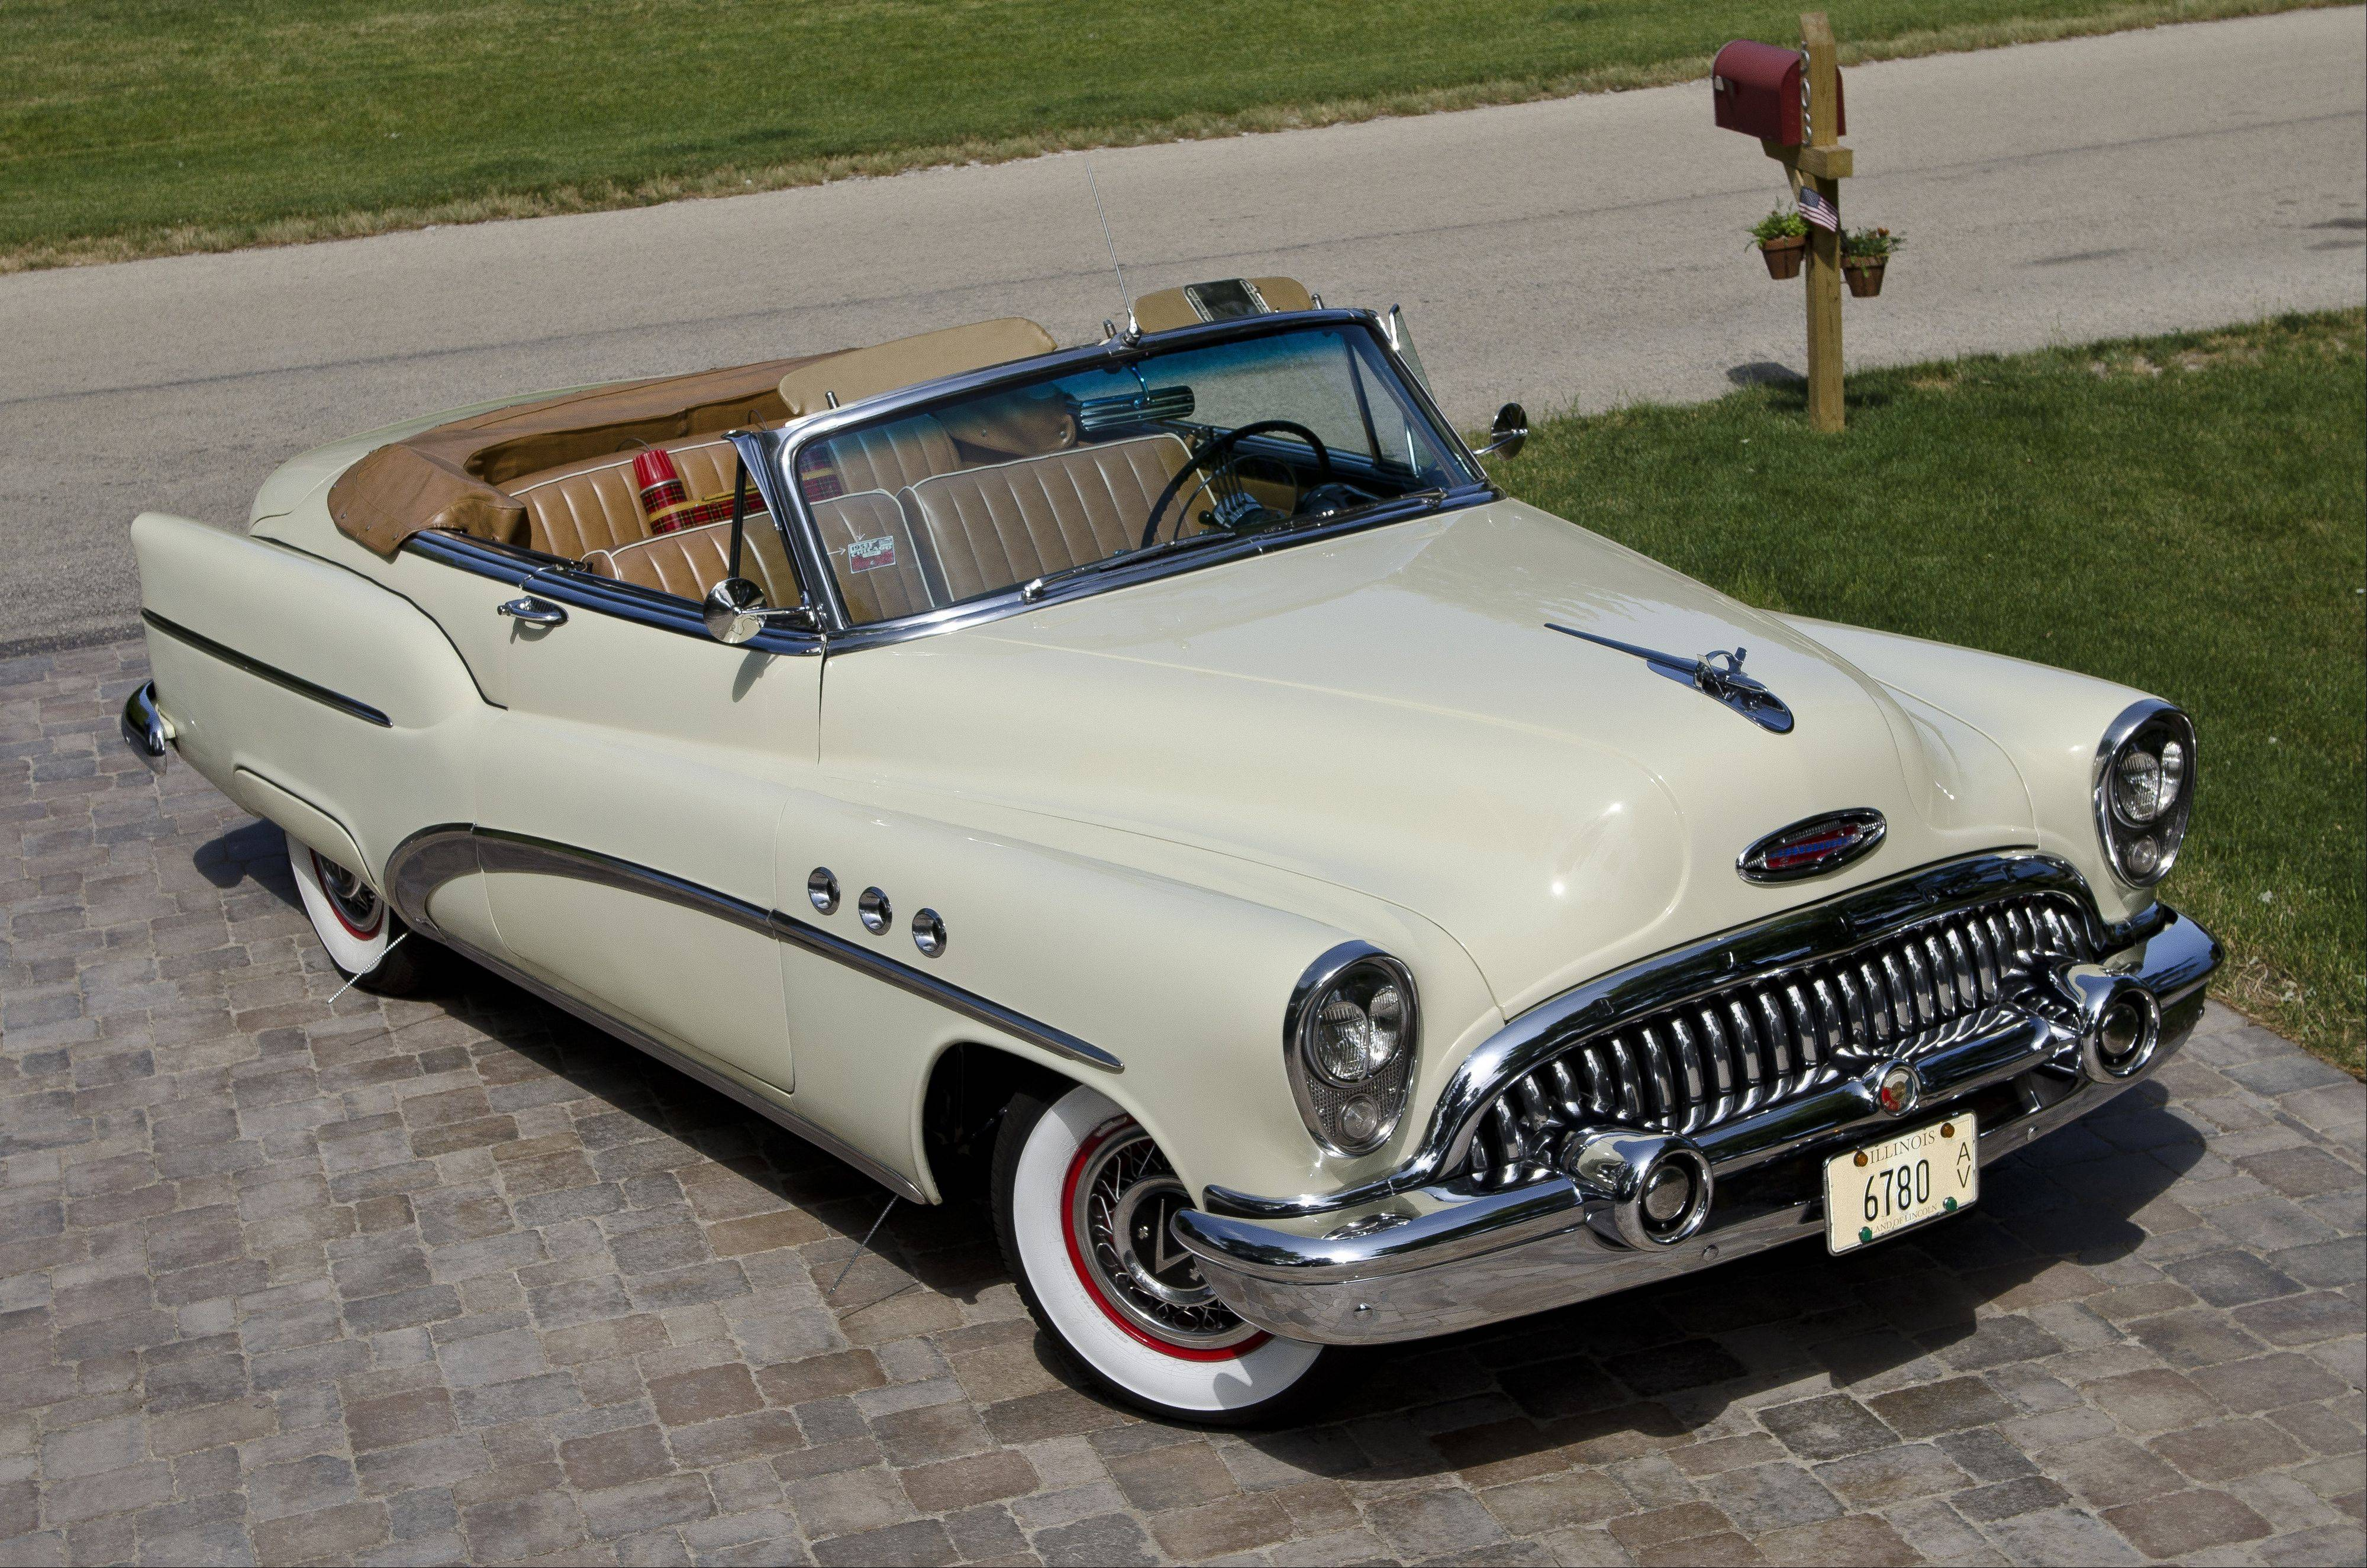 Kurt Fredricks considers his 1953 Buick Super convertible a rolling relative.